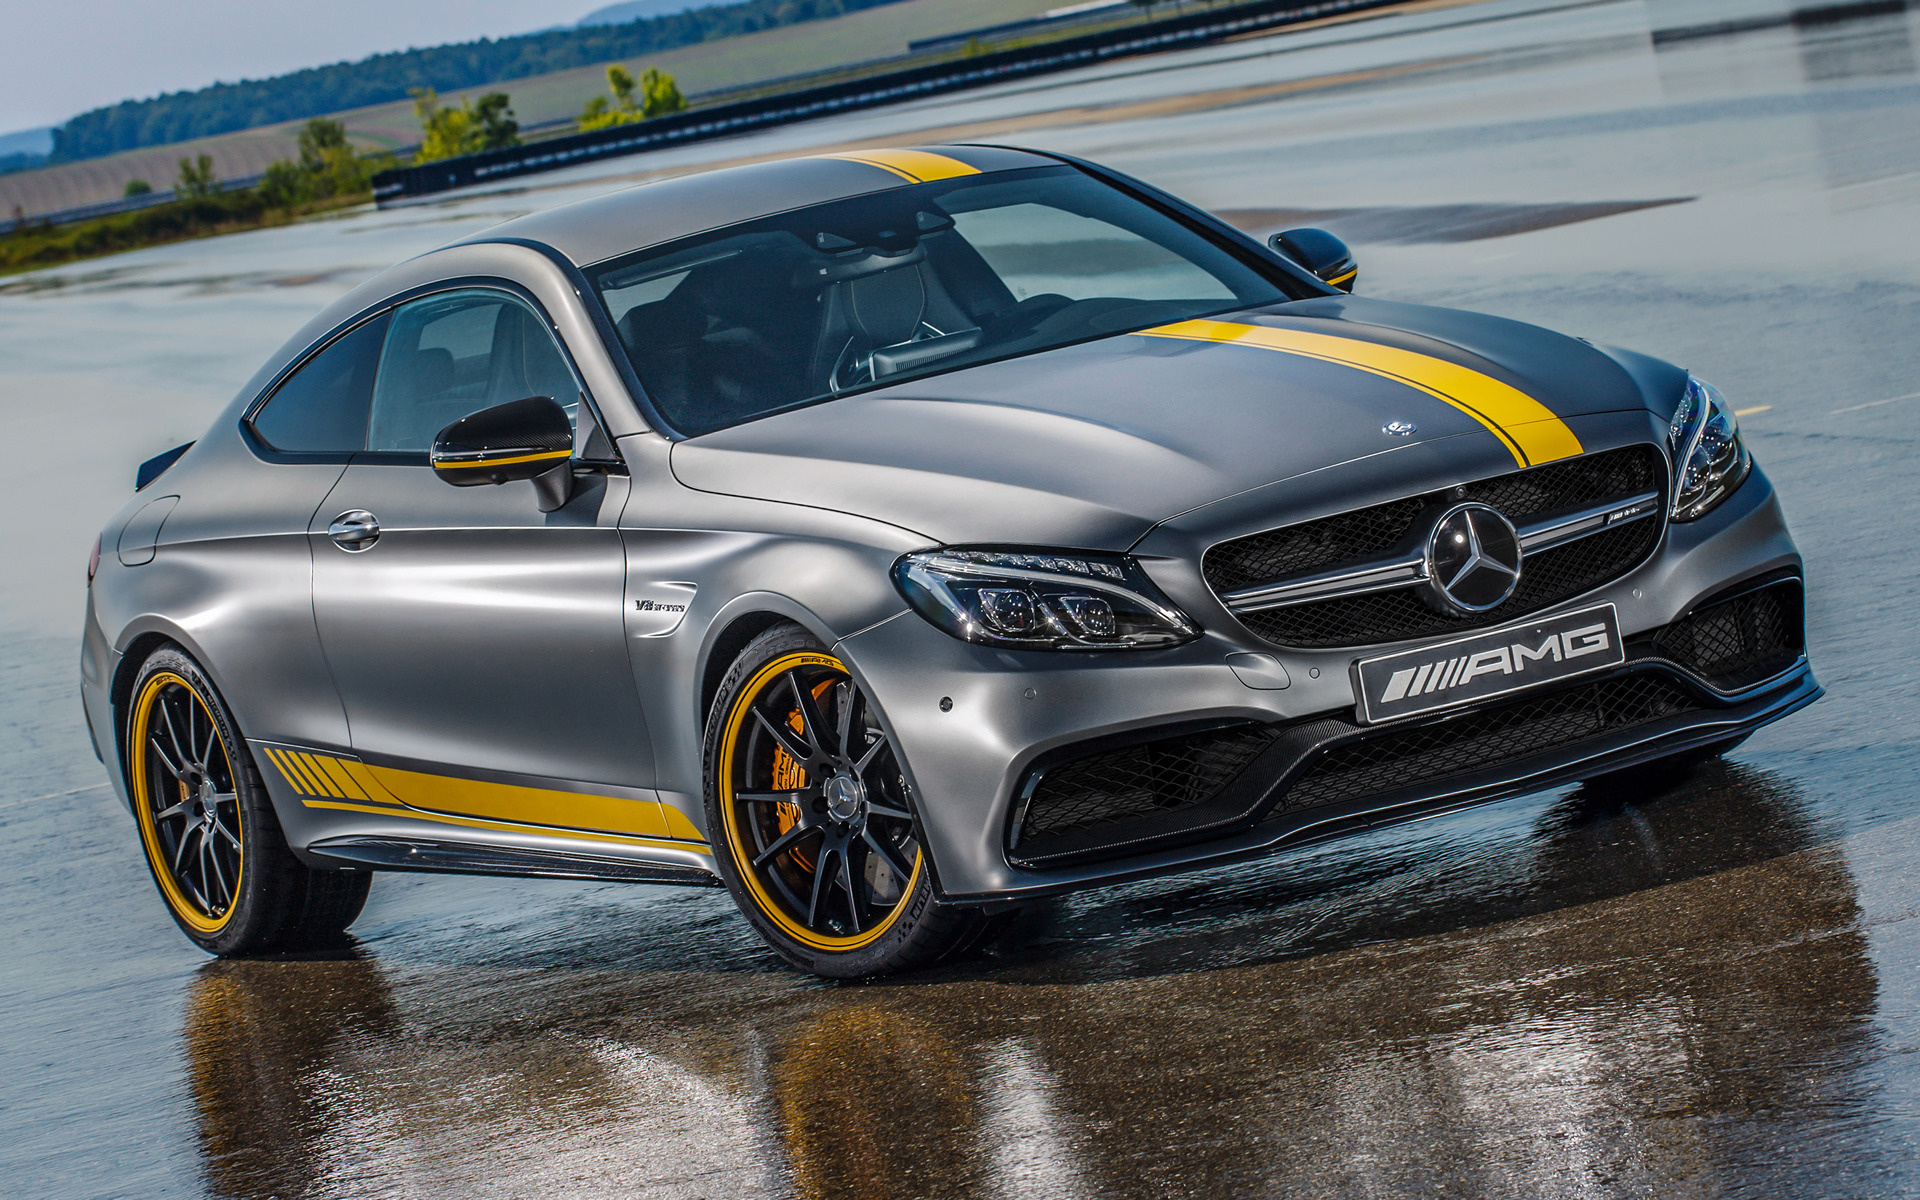 Mercedes amg c 63 s coupe edition 1 2016 wallpapers and hd images - Wallpapers Mercedes Amg C 63 S Coupe Edition 1 2016